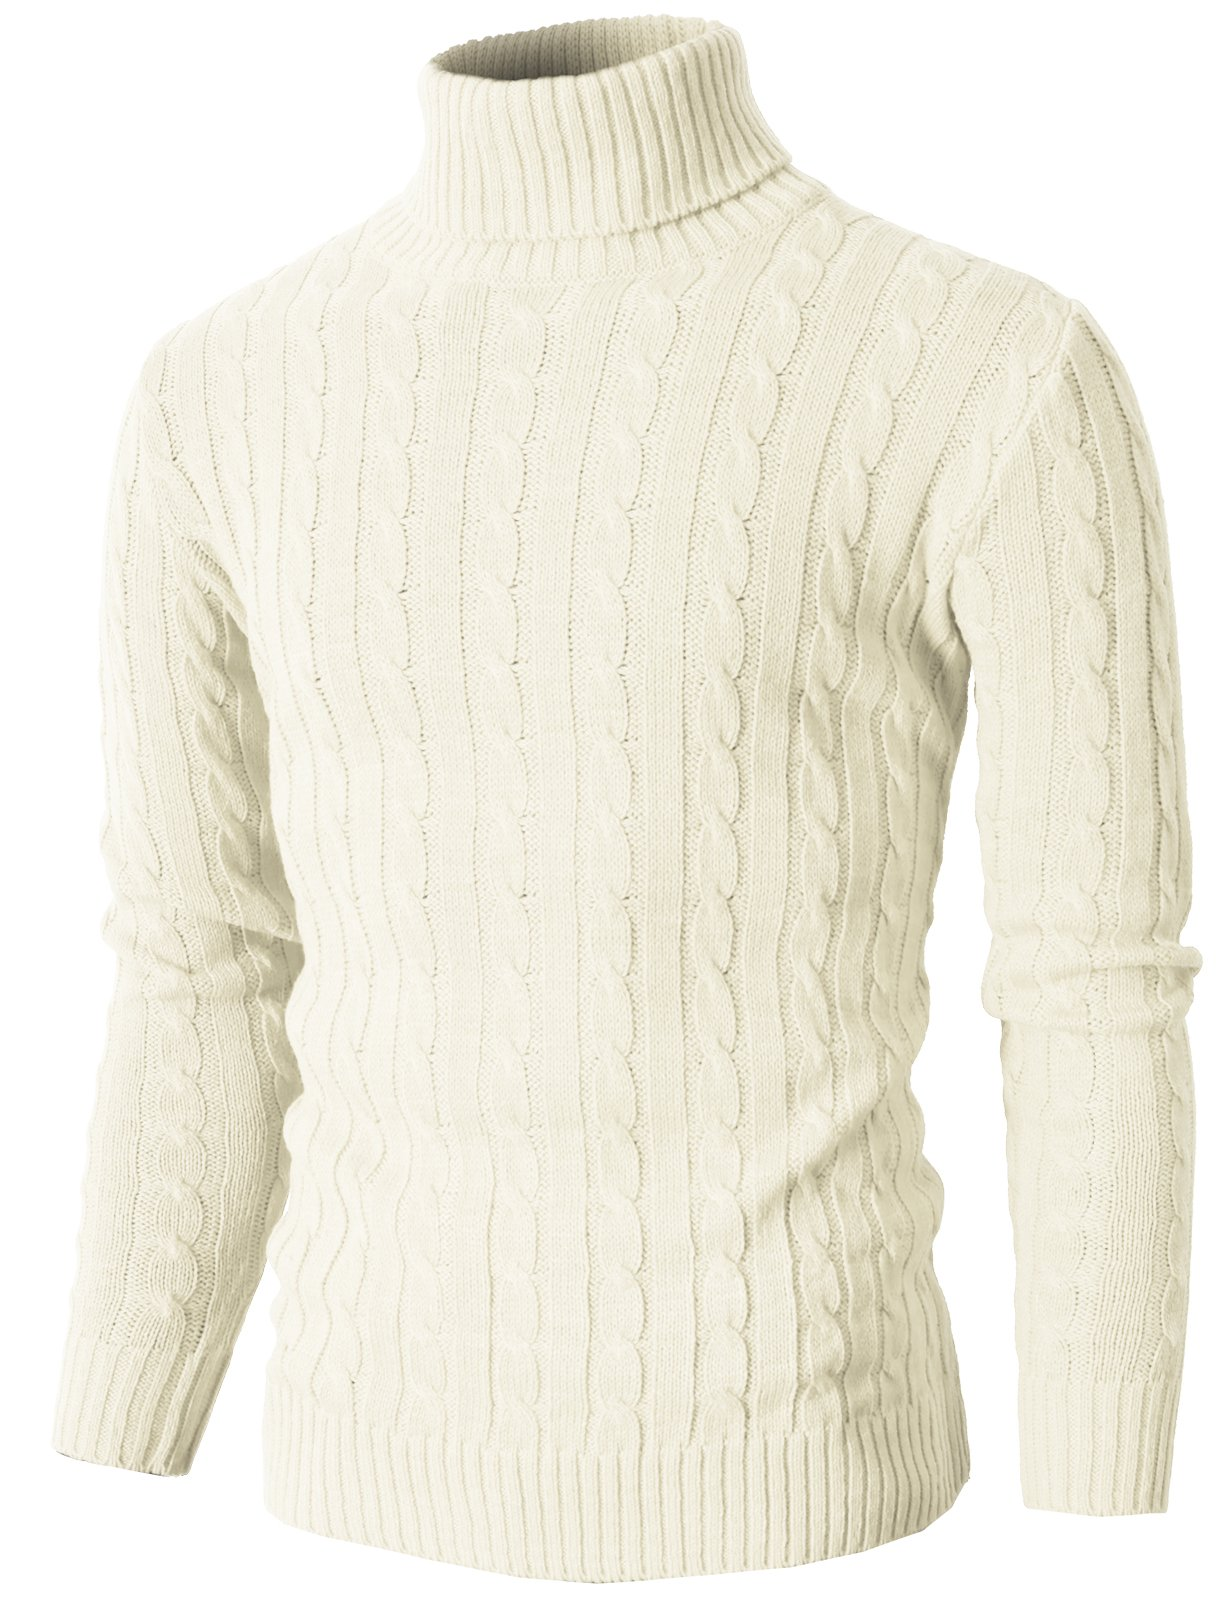 H2H Mens Casual Turtleneck Slim Fit Pullover Sweaters with Twist Patterned IVORY US M/Asia L (KMOSWL033)